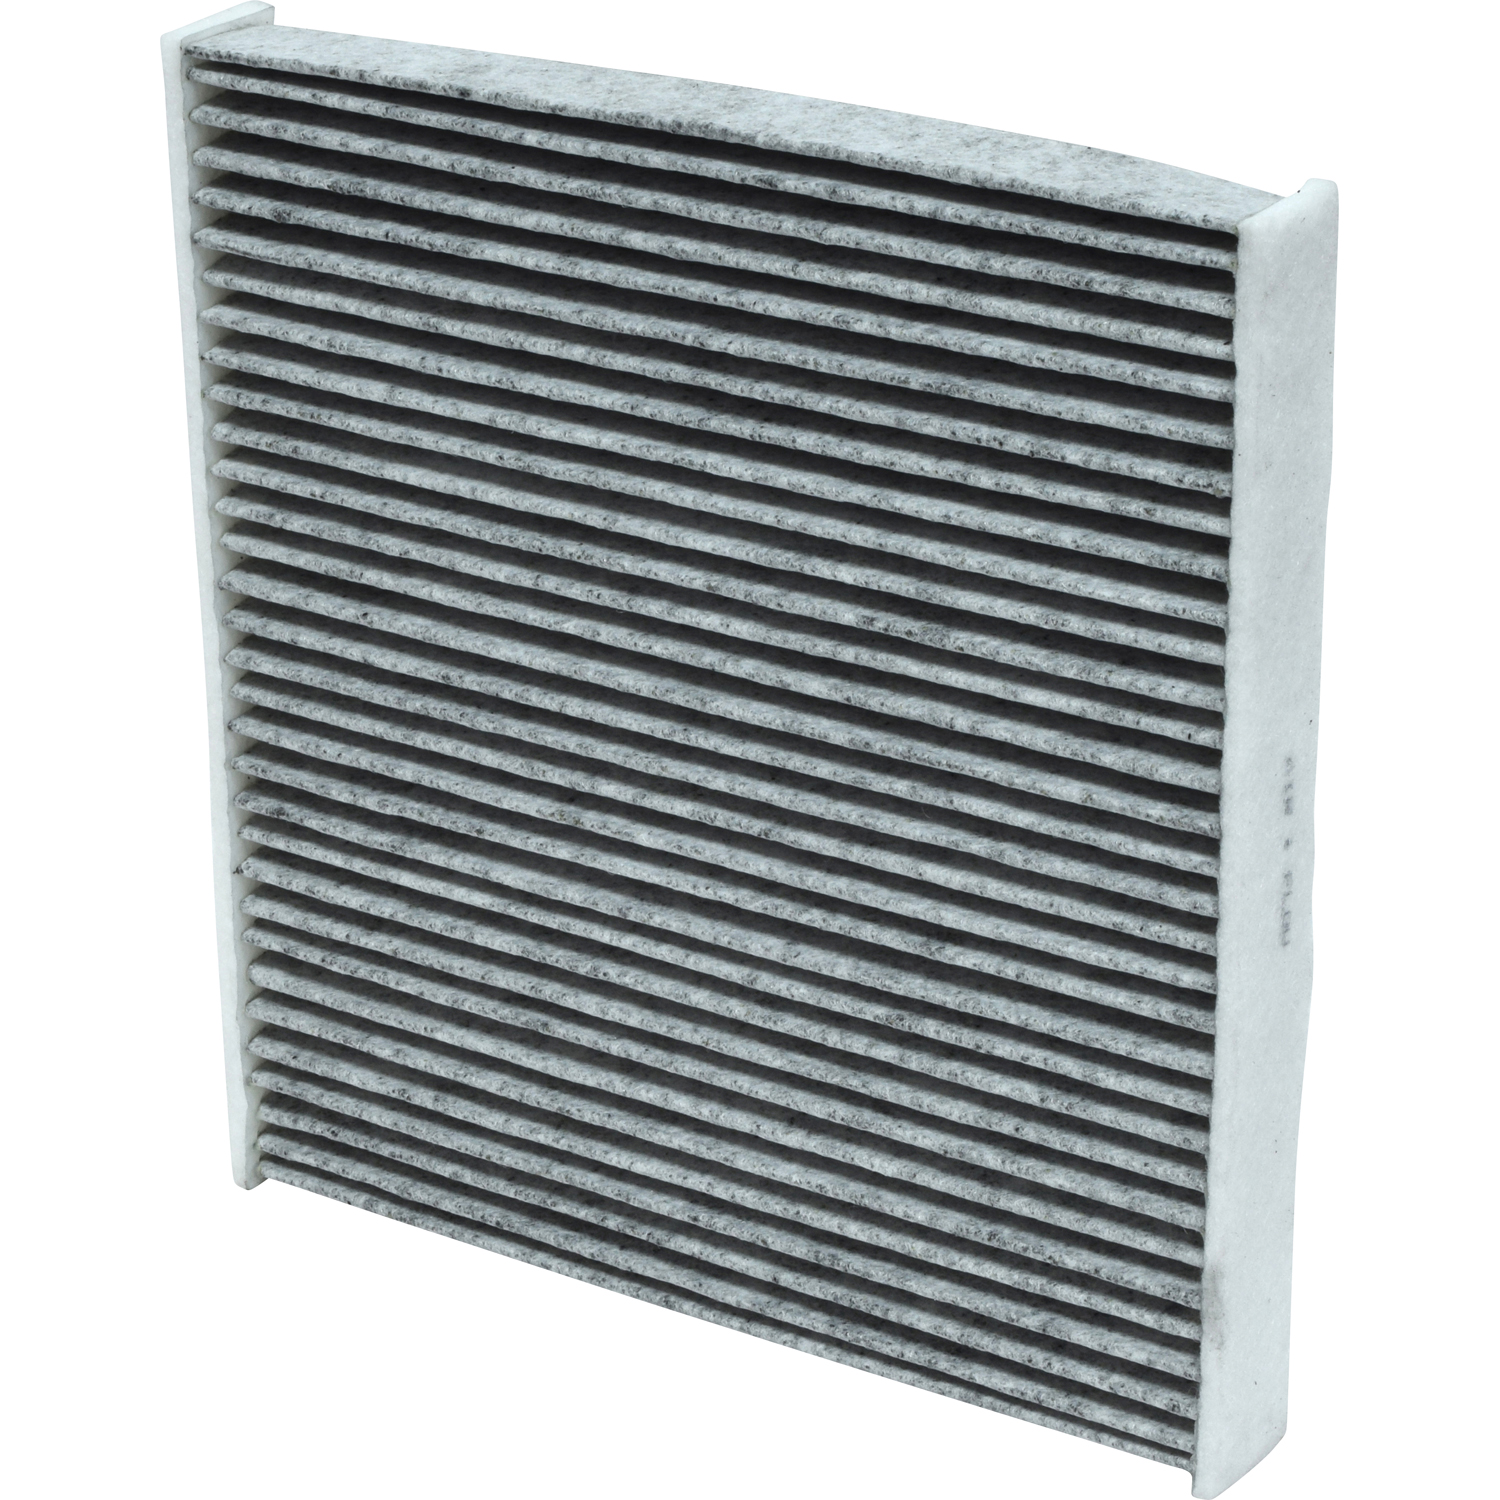 Charcoal Cabin Air Filter FI 1274C